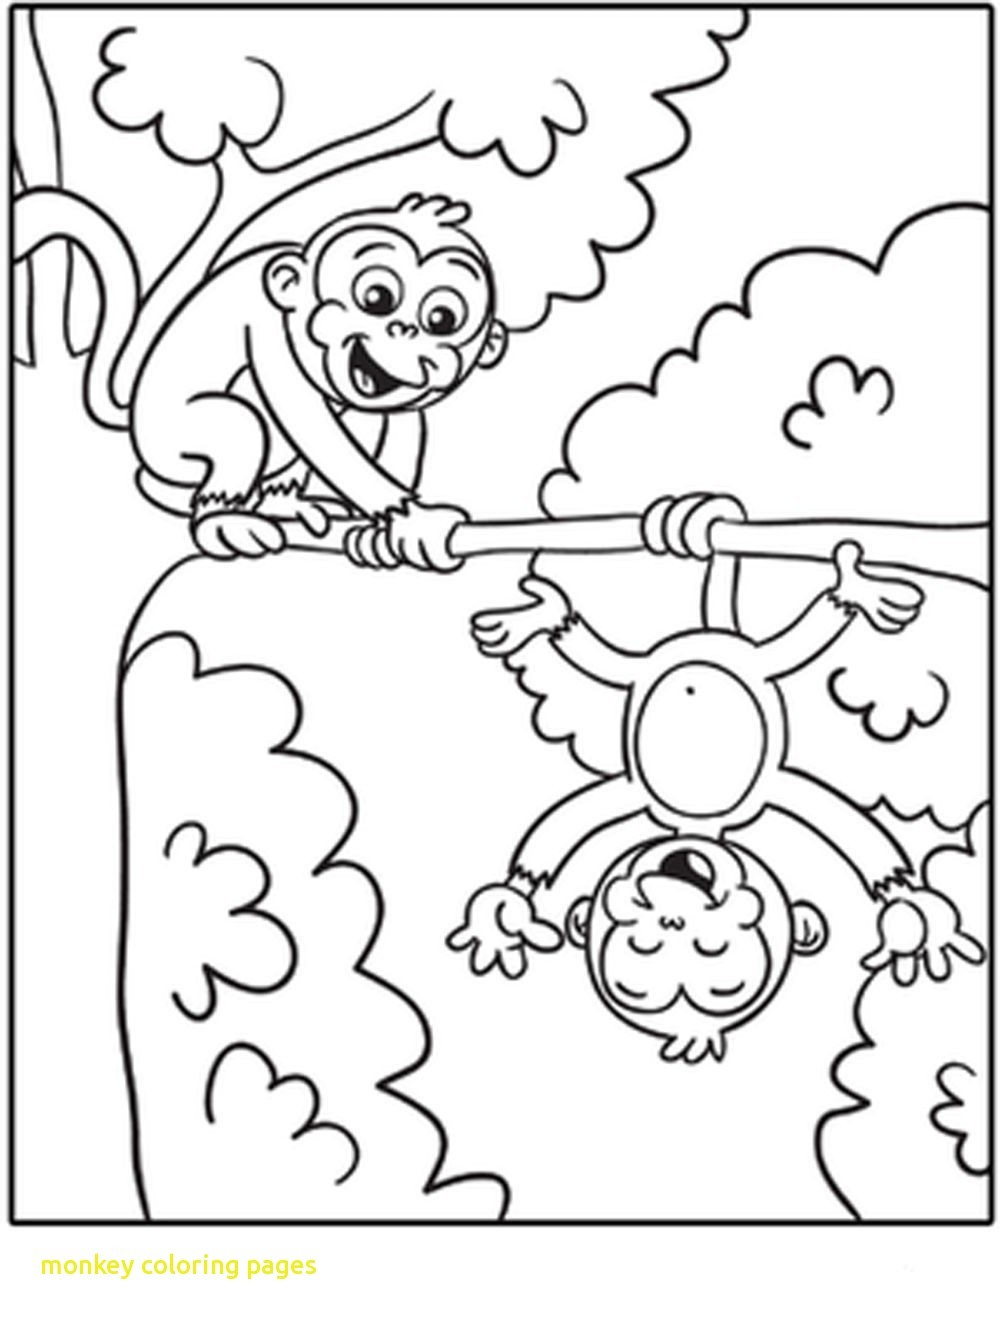 Monkey Coloring Pages 4 #29452 - Free Printable Monkey Coloring Sheets